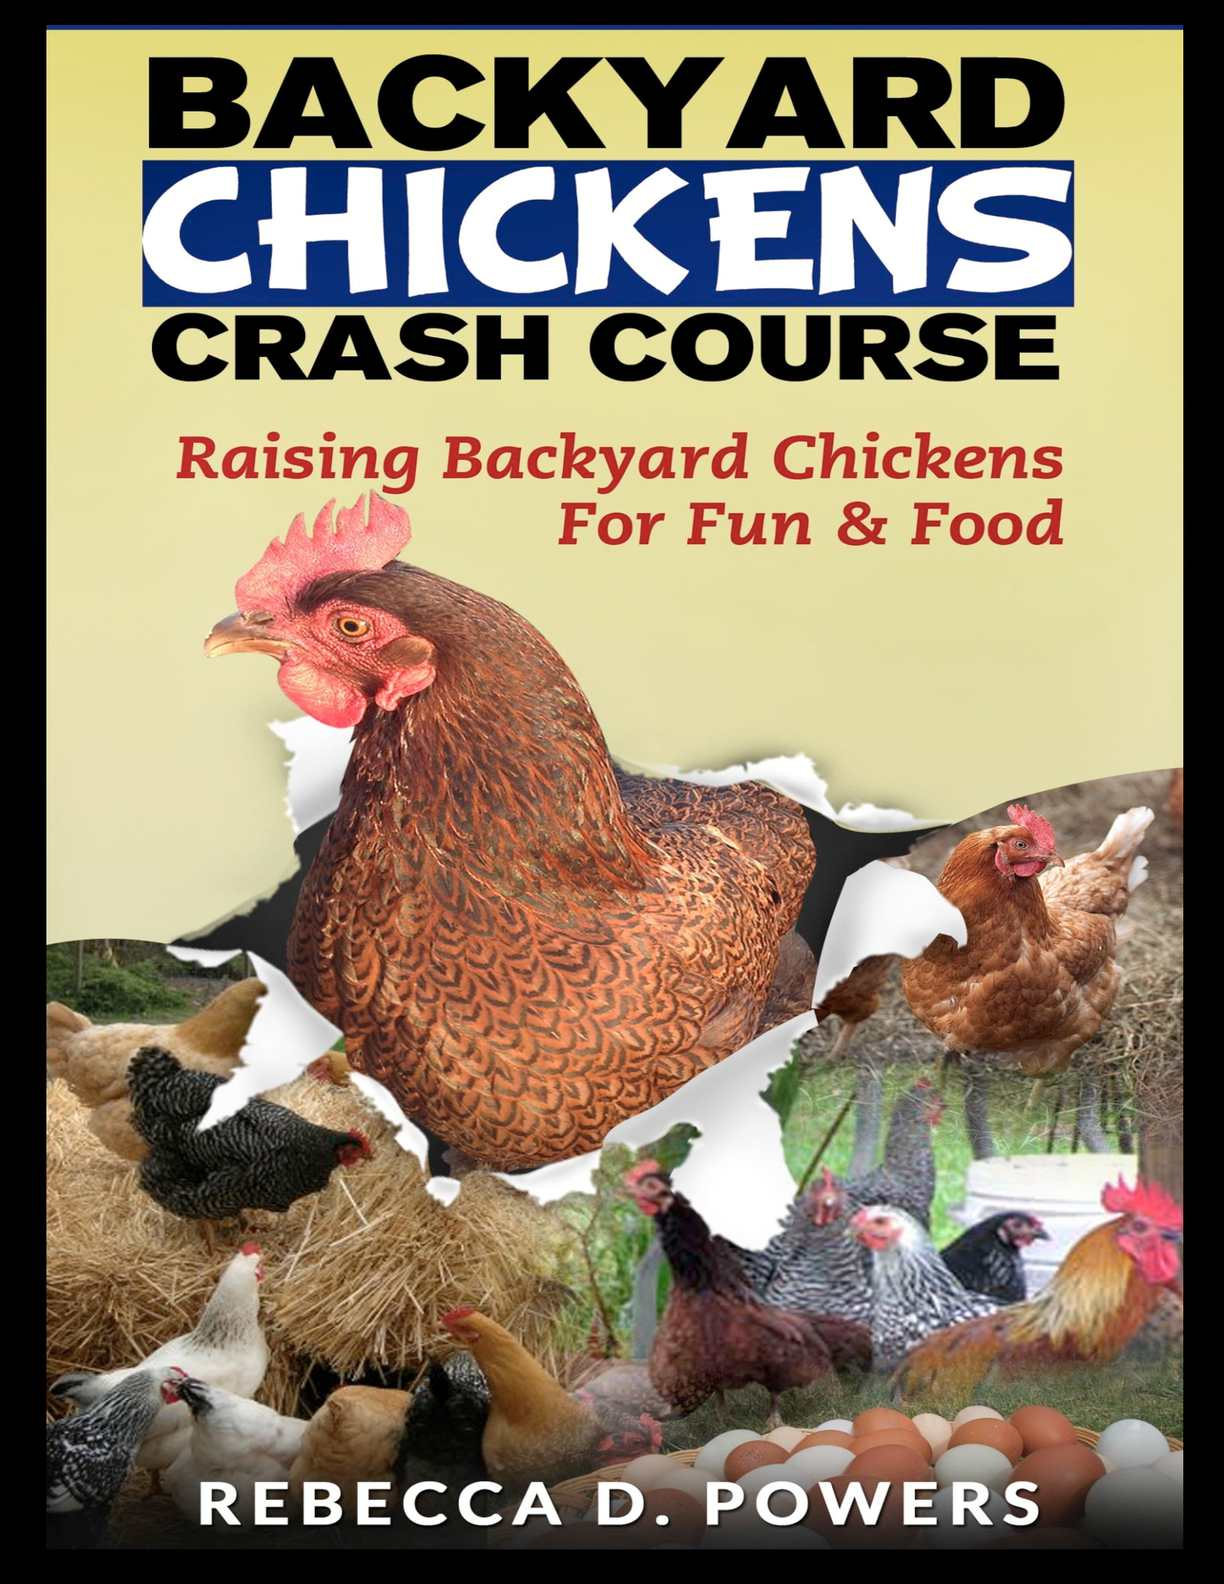 Backyard Chickens Crash Course - Raising Backyard Chickens For Fun & Food